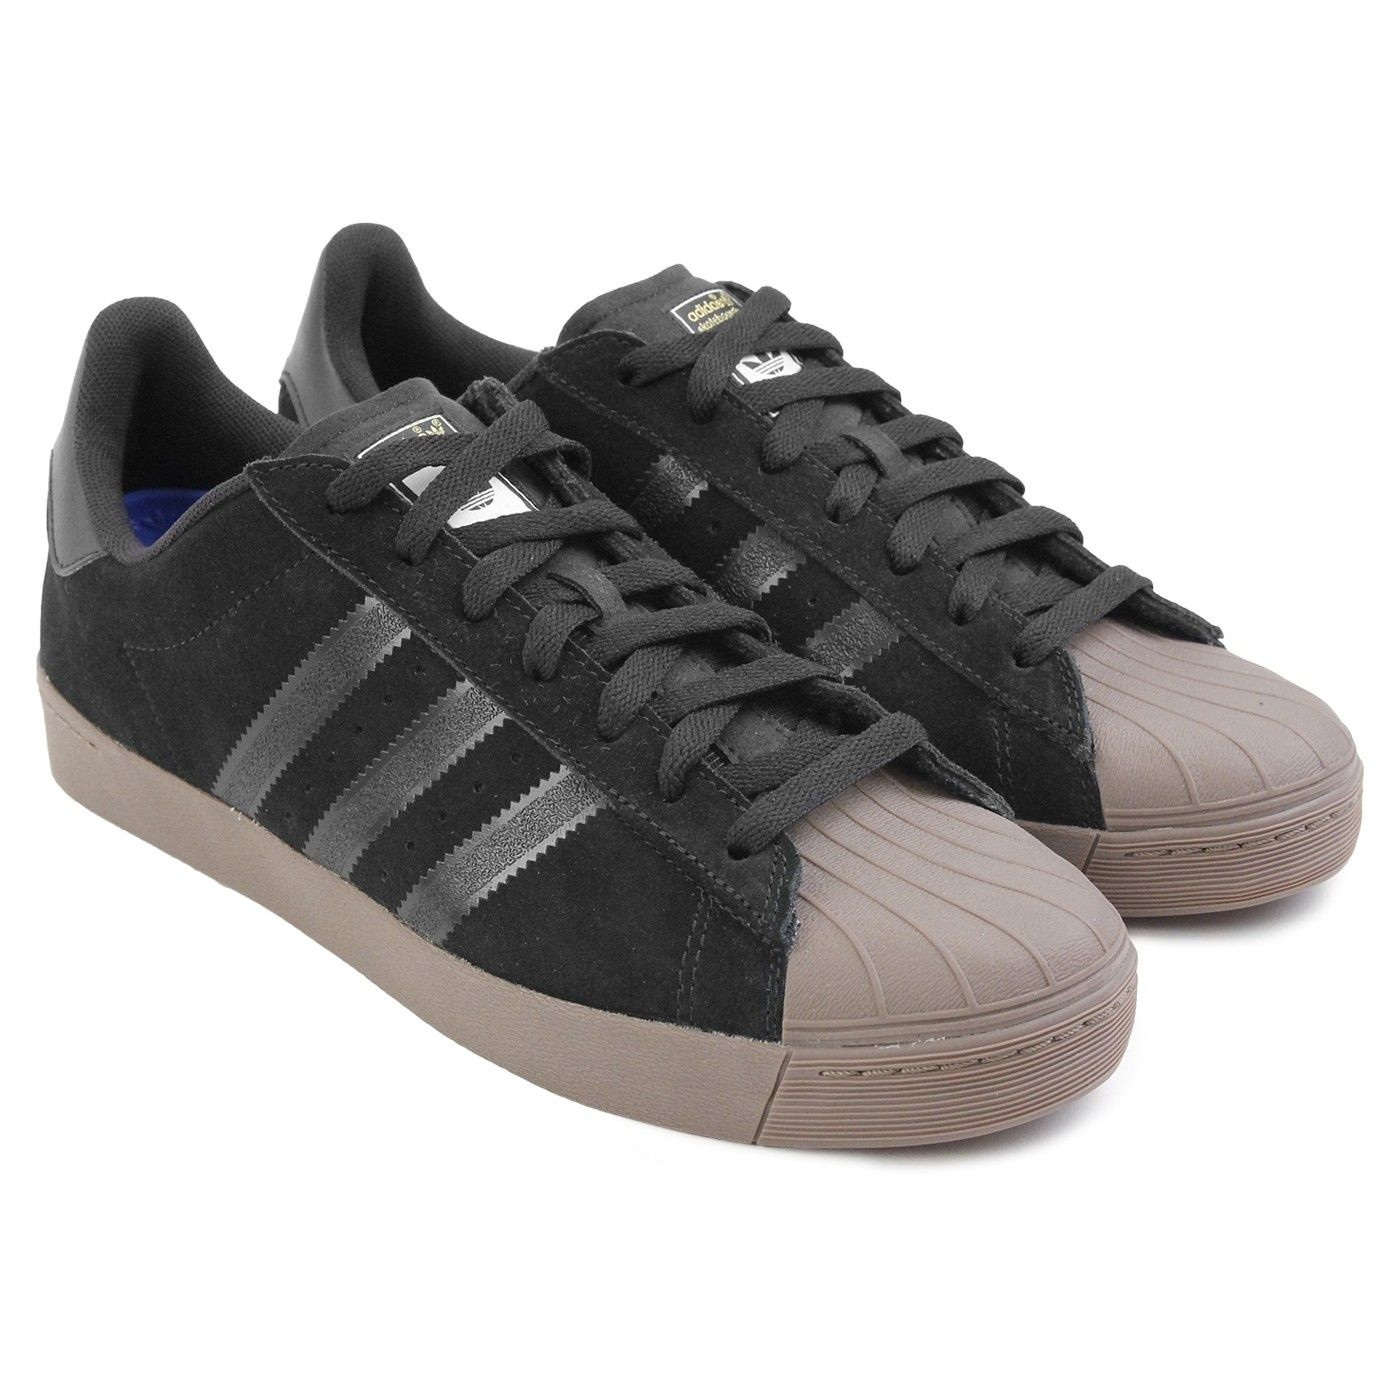 46875b132adb Superstar Vulc ADV Shoes in Black   Gold Metallic   Gum by Adidas  Skateboarding